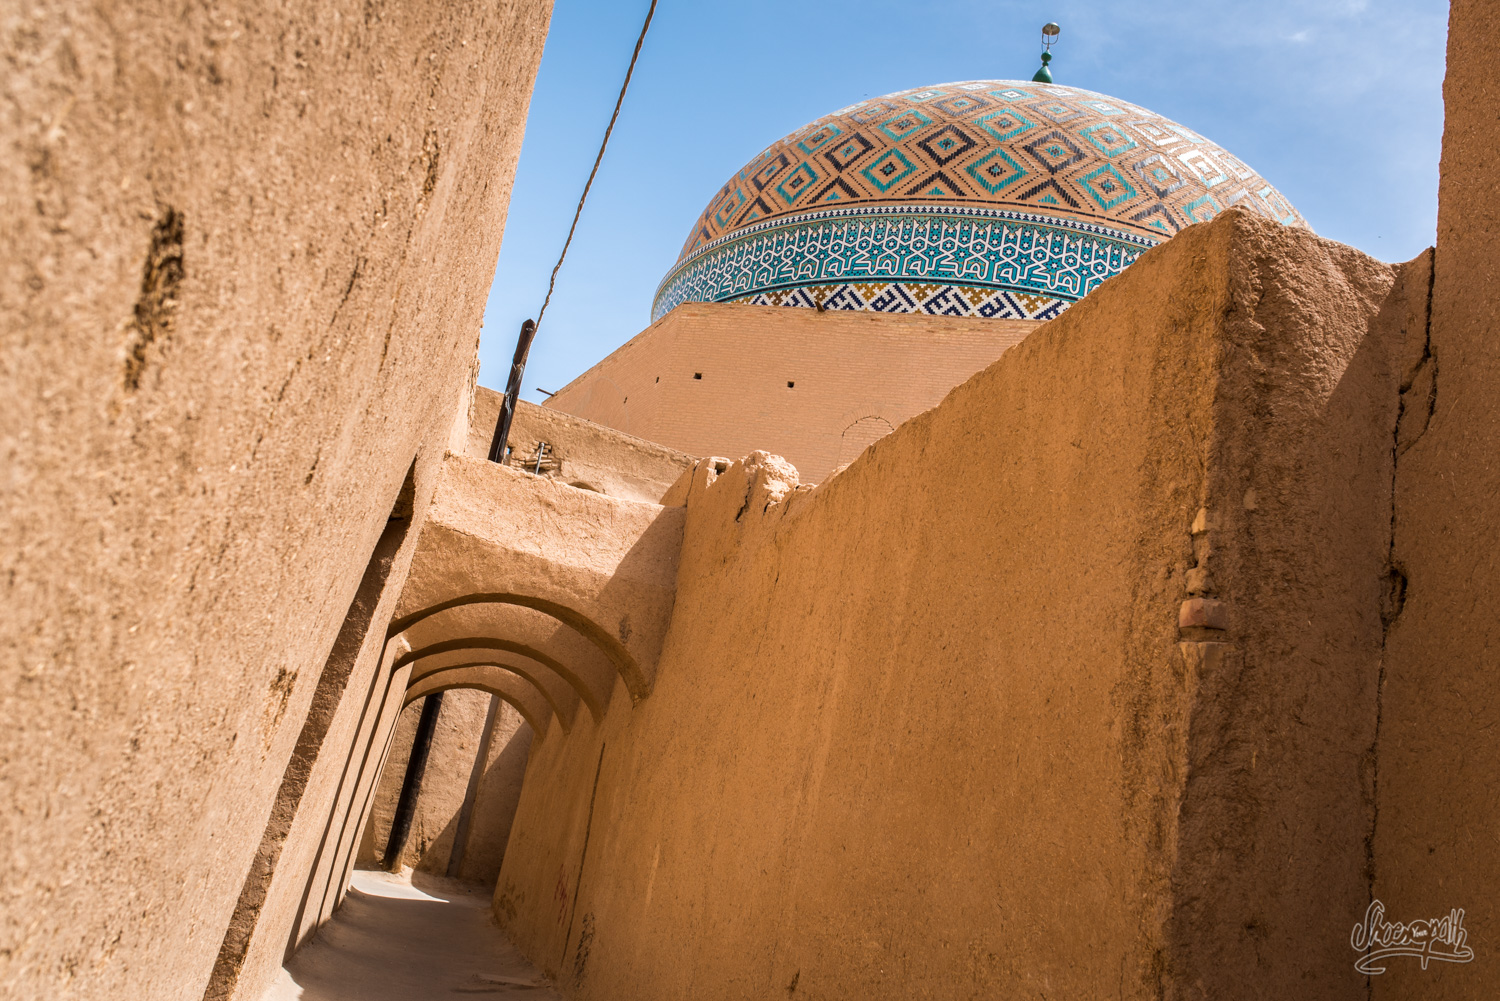 In the streets of Yazd old town center : mud walls and blue cupolas